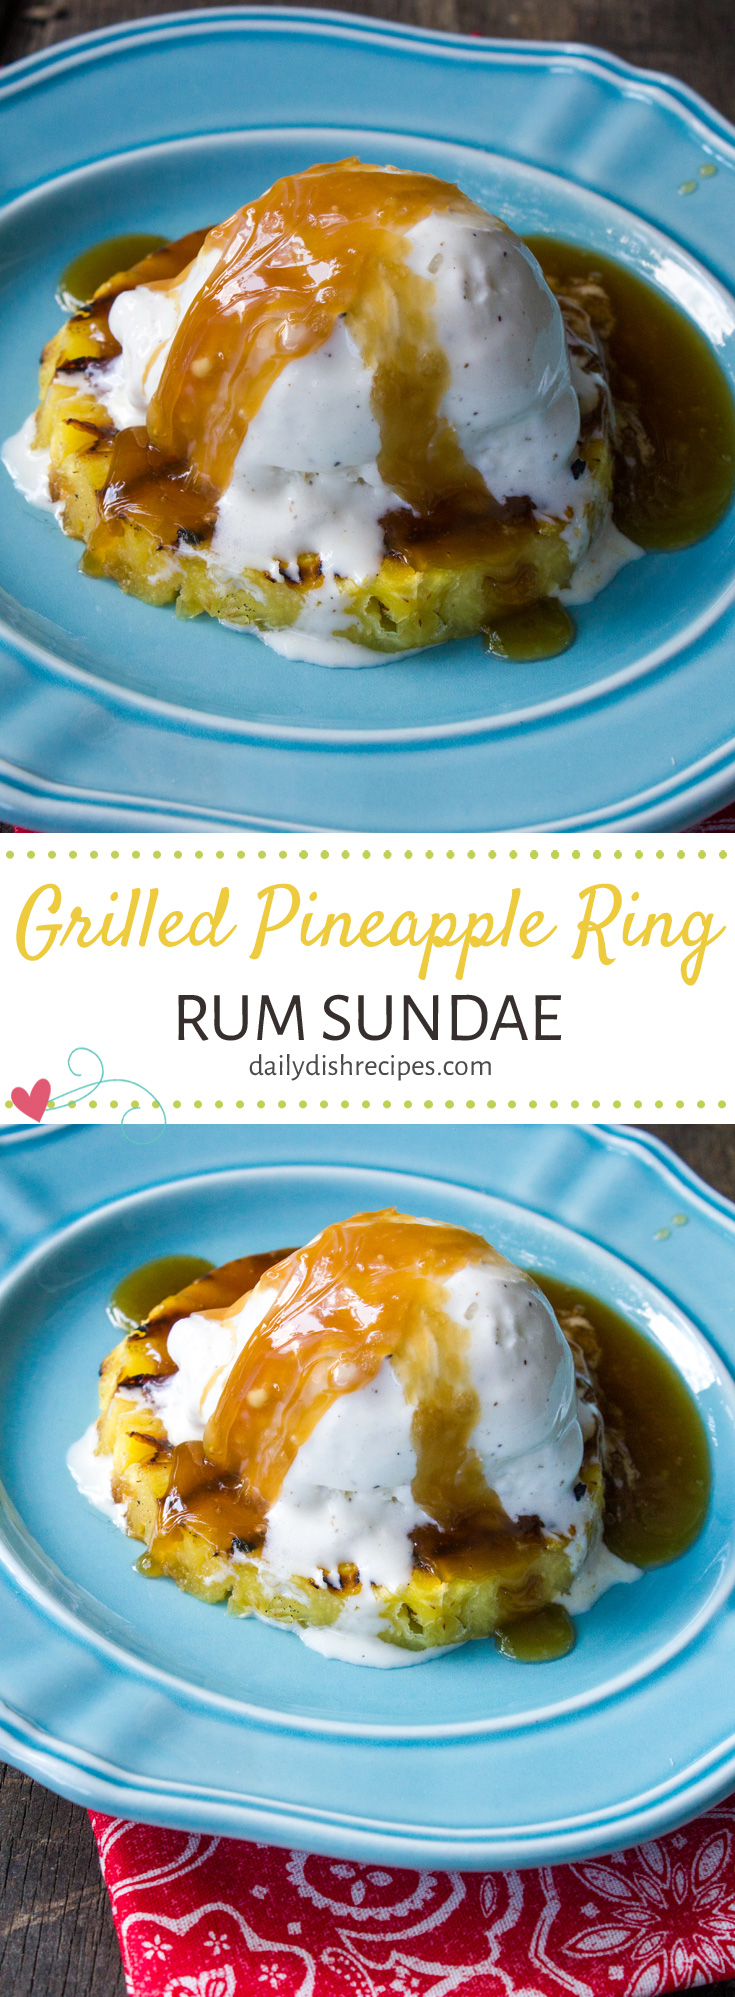 Nothing like beating the heat with this delicious & super easy Grilled Pineapple Ring Rum Sundae. Just a few simple ingredients for the perfect BBQ dessert!